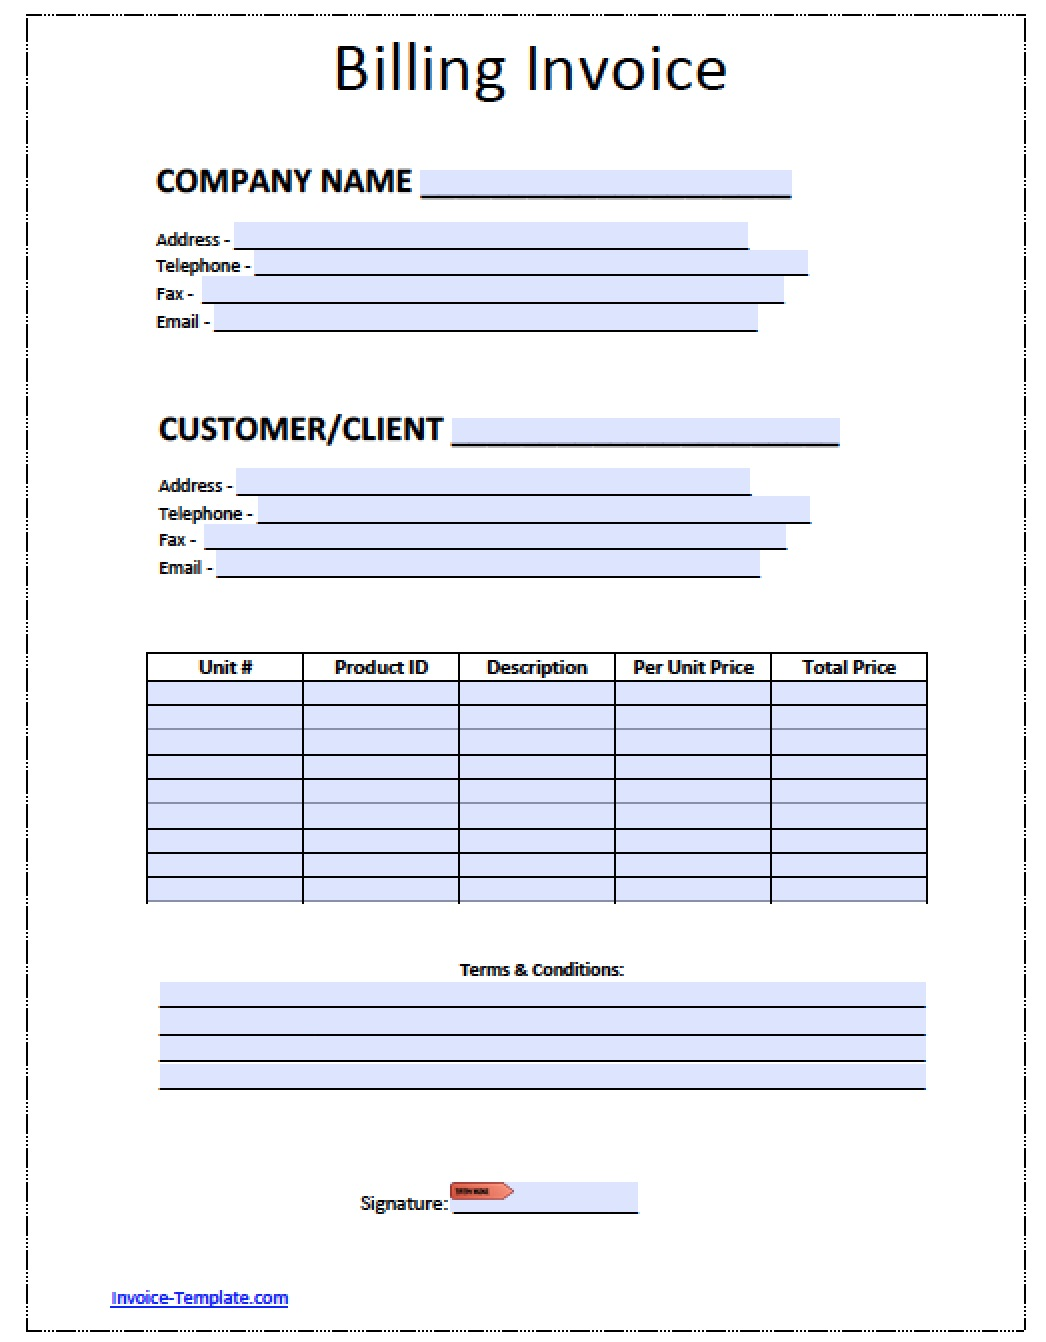 Soulfulpowerus  Nice Billing Invoice Invoices Faq U Cloudflare Support Billing  With Engaging Free Billing Invoice Template  Excel  Pdf  Word Doc  Billing With Endearing Excel Invoice Template  Also Invoice Due In Addition Vendors Invoice And Wawf My Invoice As Well As Quicken Invoice Software Additionally At T Invoice From Happytomco With Soulfulpowerus  Engaging Billing Invoice Invoices Faq U Cloudflare Support Billing  With Endearing Free Billing Invoice Template  Excel  Pdf  Word Doc  Billing And Nice Excel Invoice Template  Also Invoice Due In Addition Vendors Invoice From Happytomco